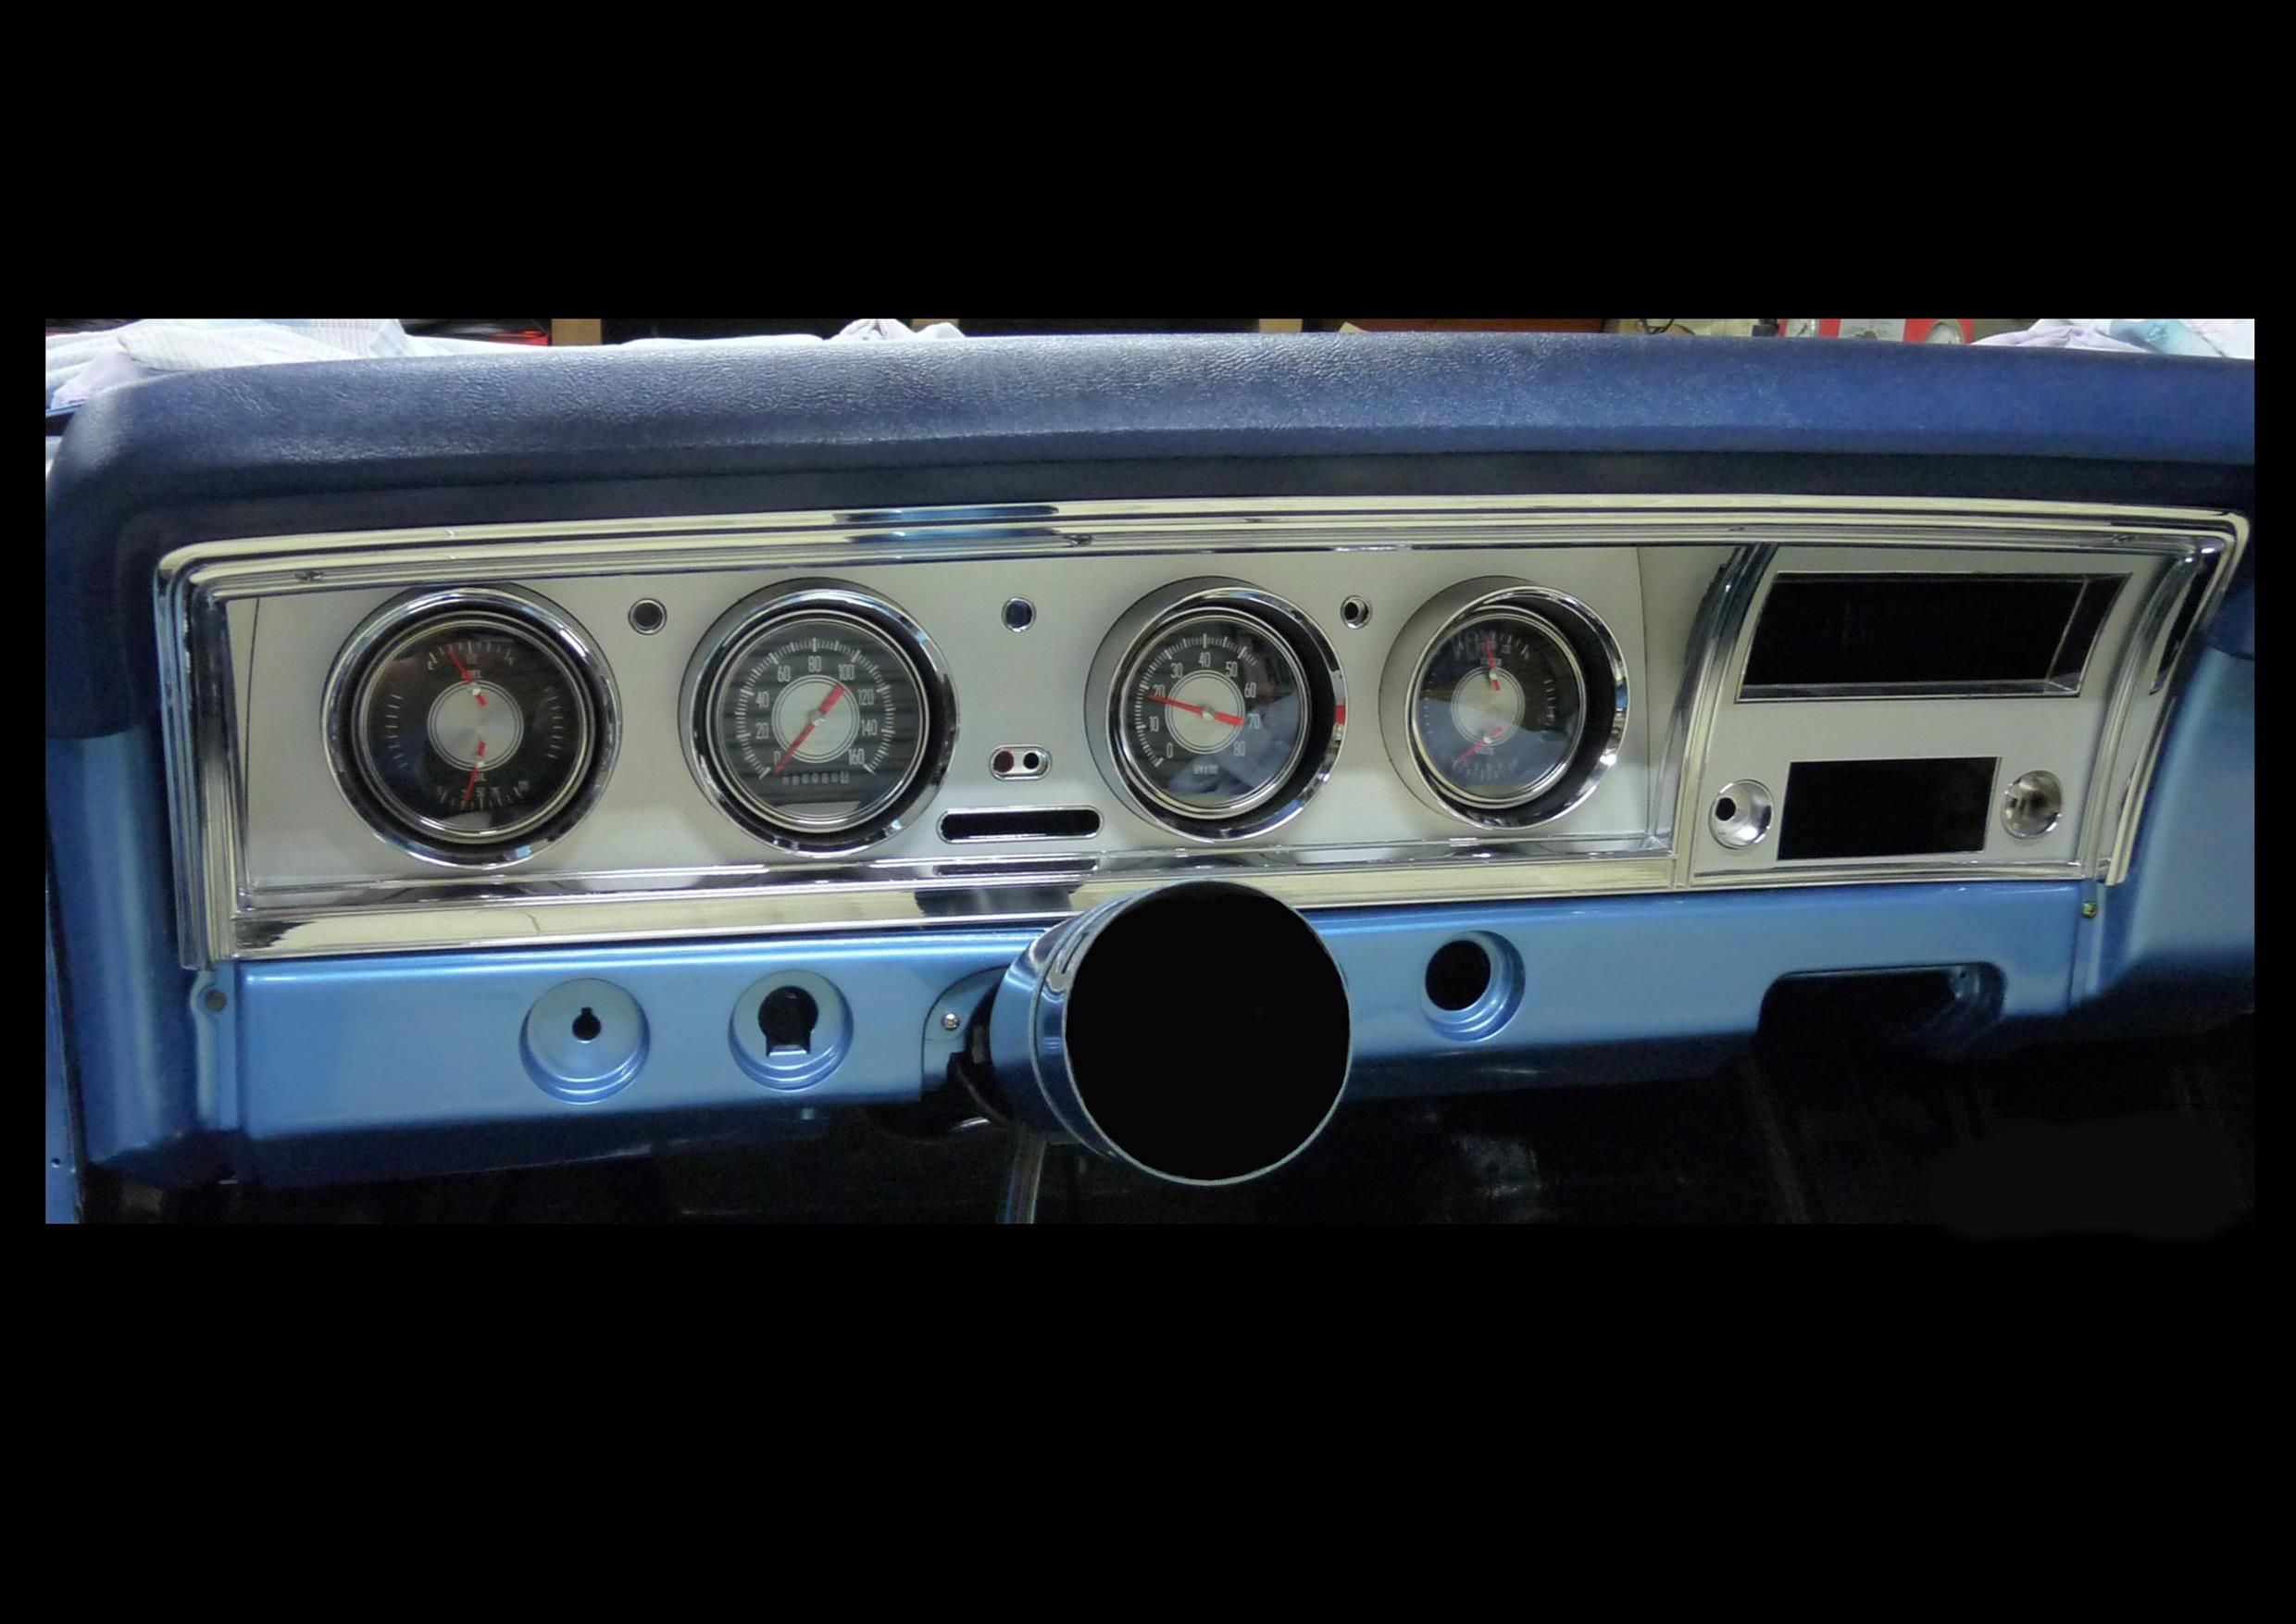 1968 Impala Custom Retro Instrument Cluster Dashboard Bezel, fitted to dash With Gauges